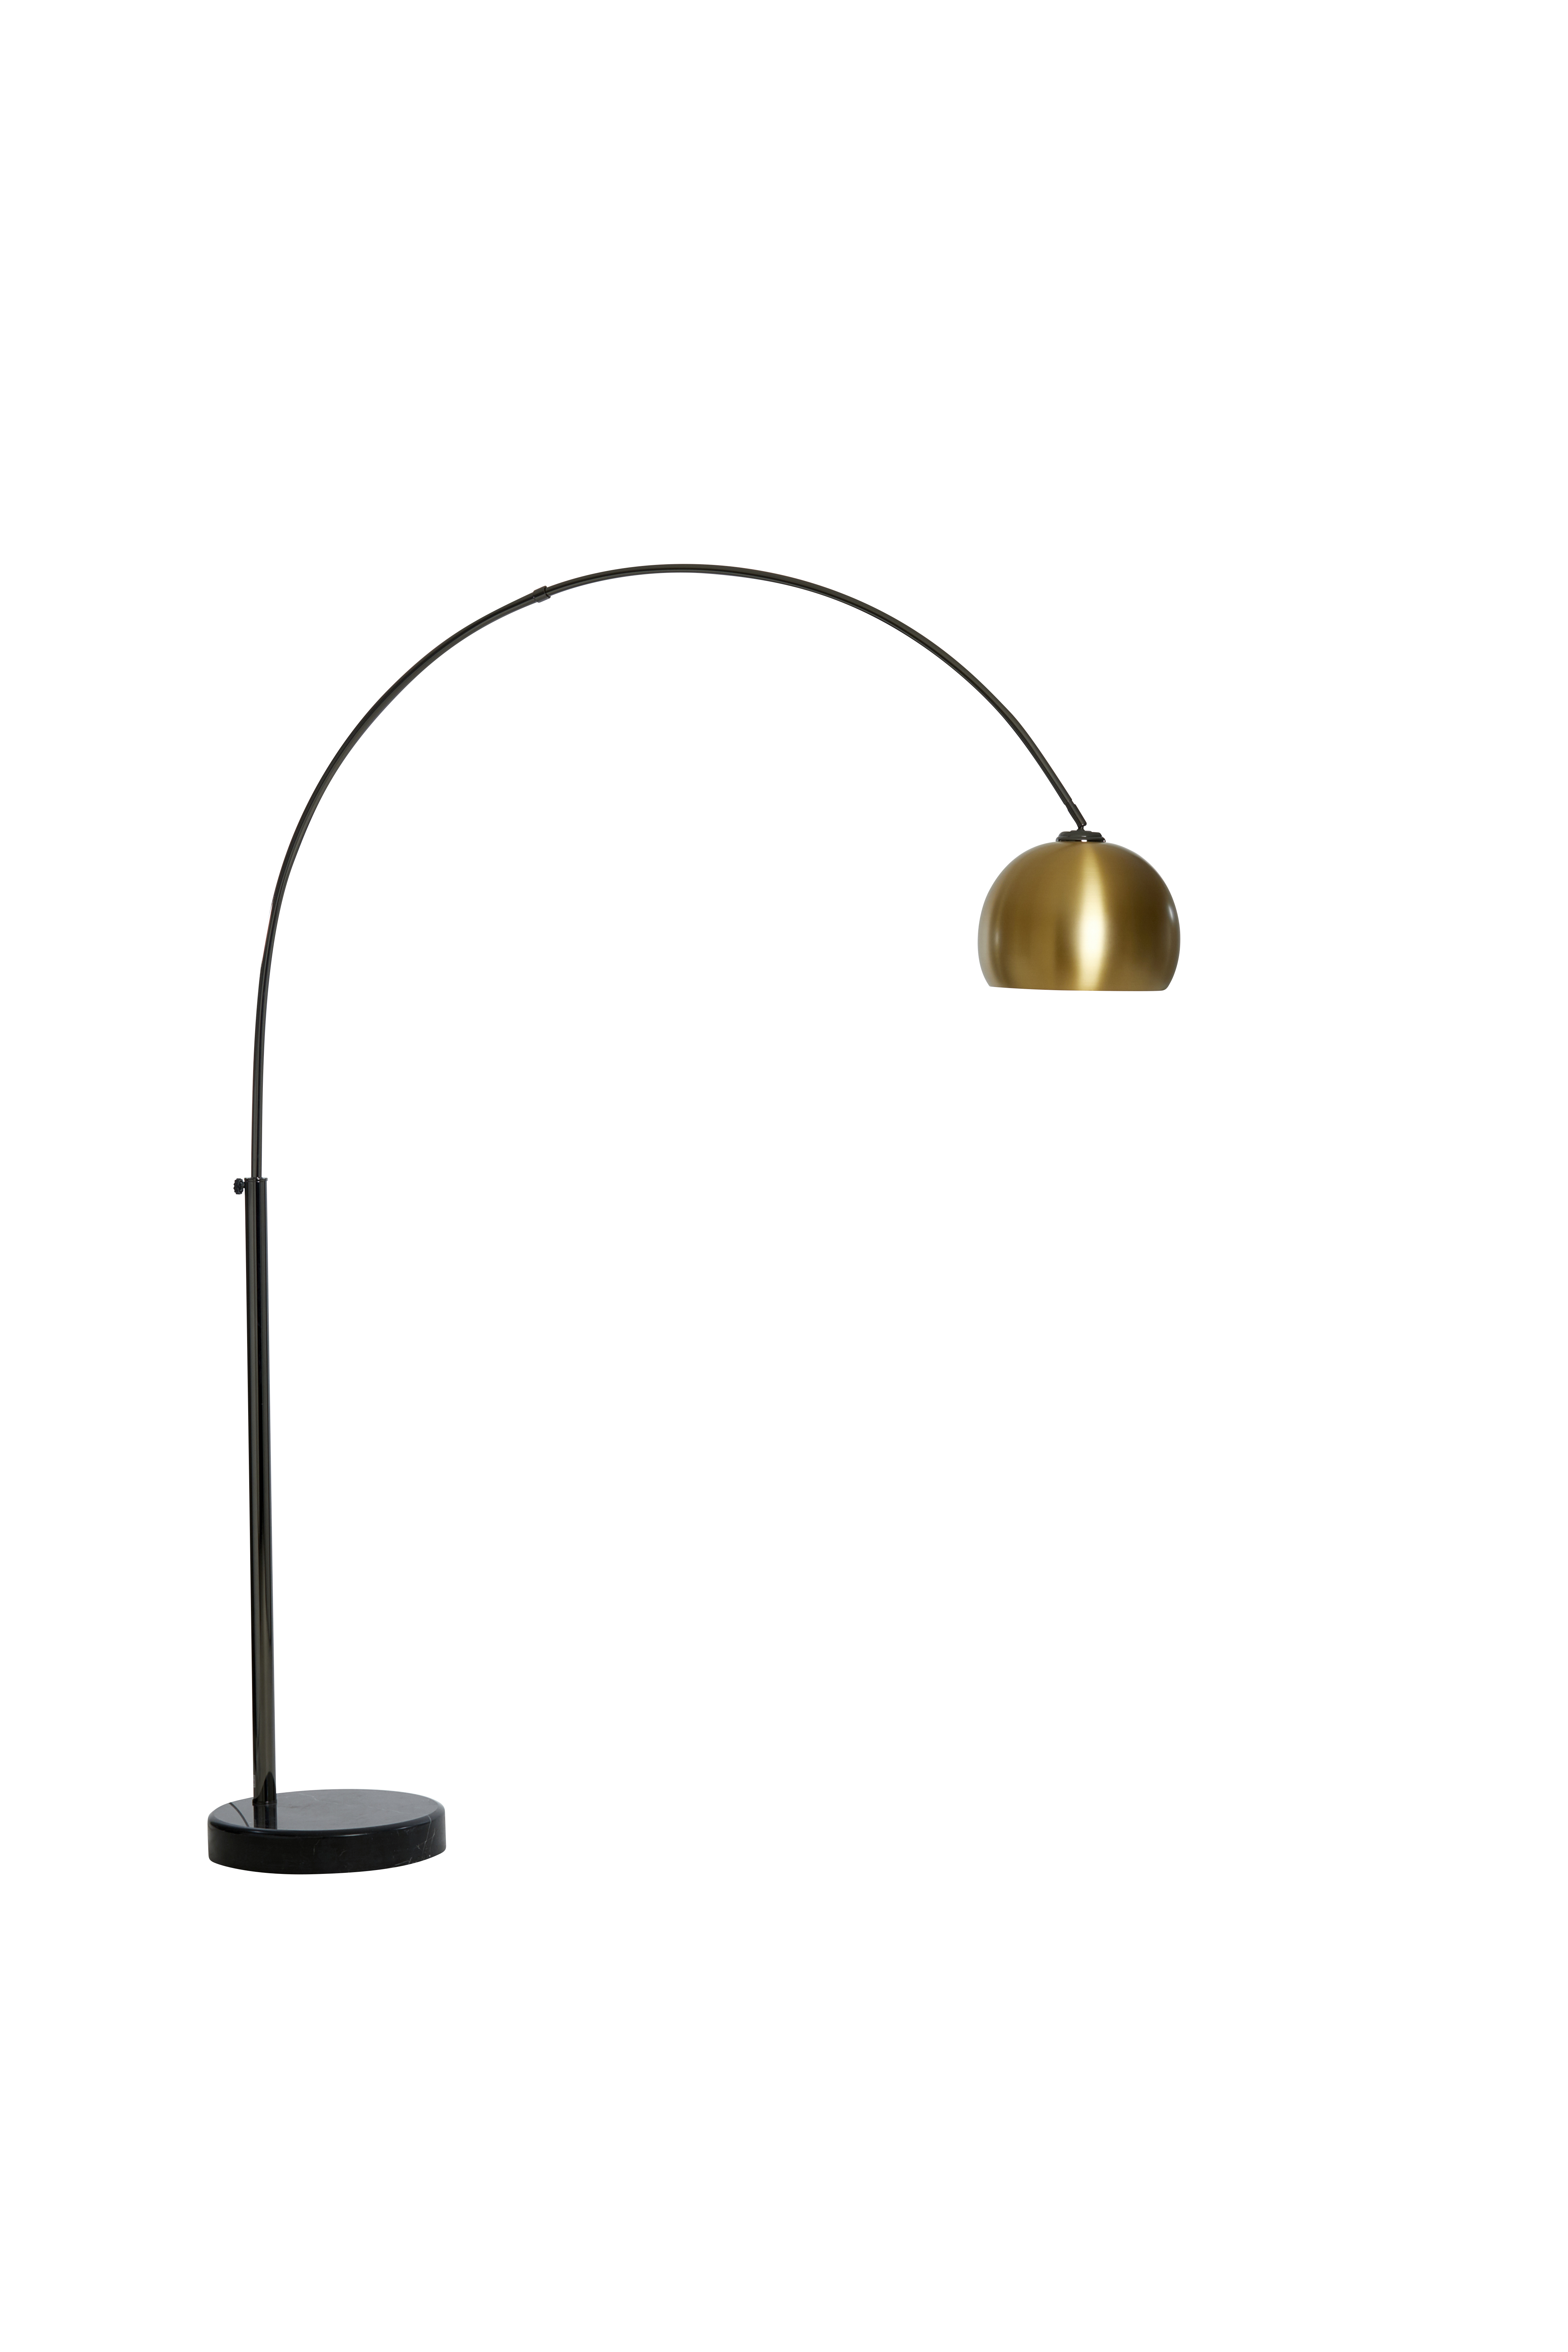 new styles coupon codes new arrivals Abitare UK | Danalight Lounge 1 Floor Lamp